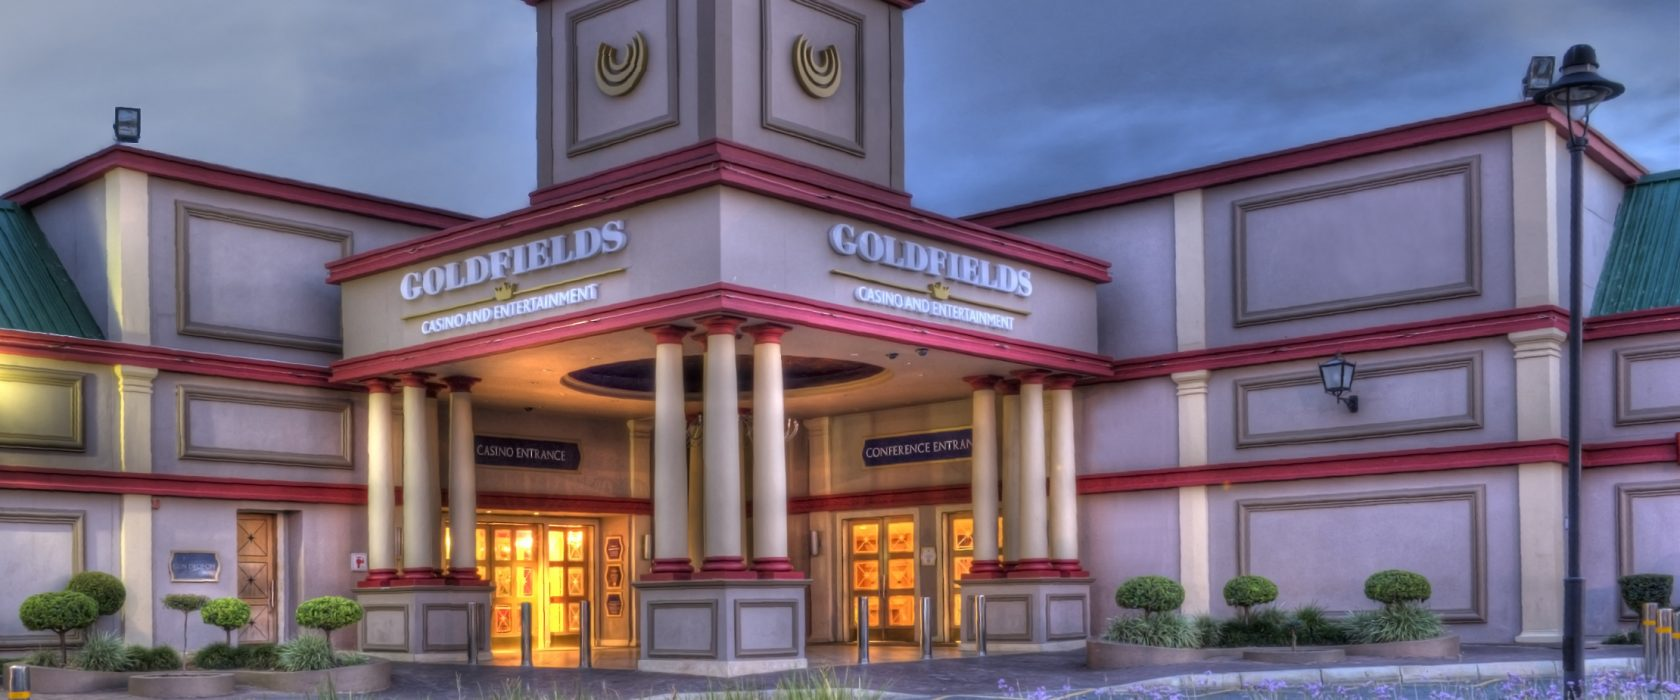 Goldfields Casino Exterior In The Evening